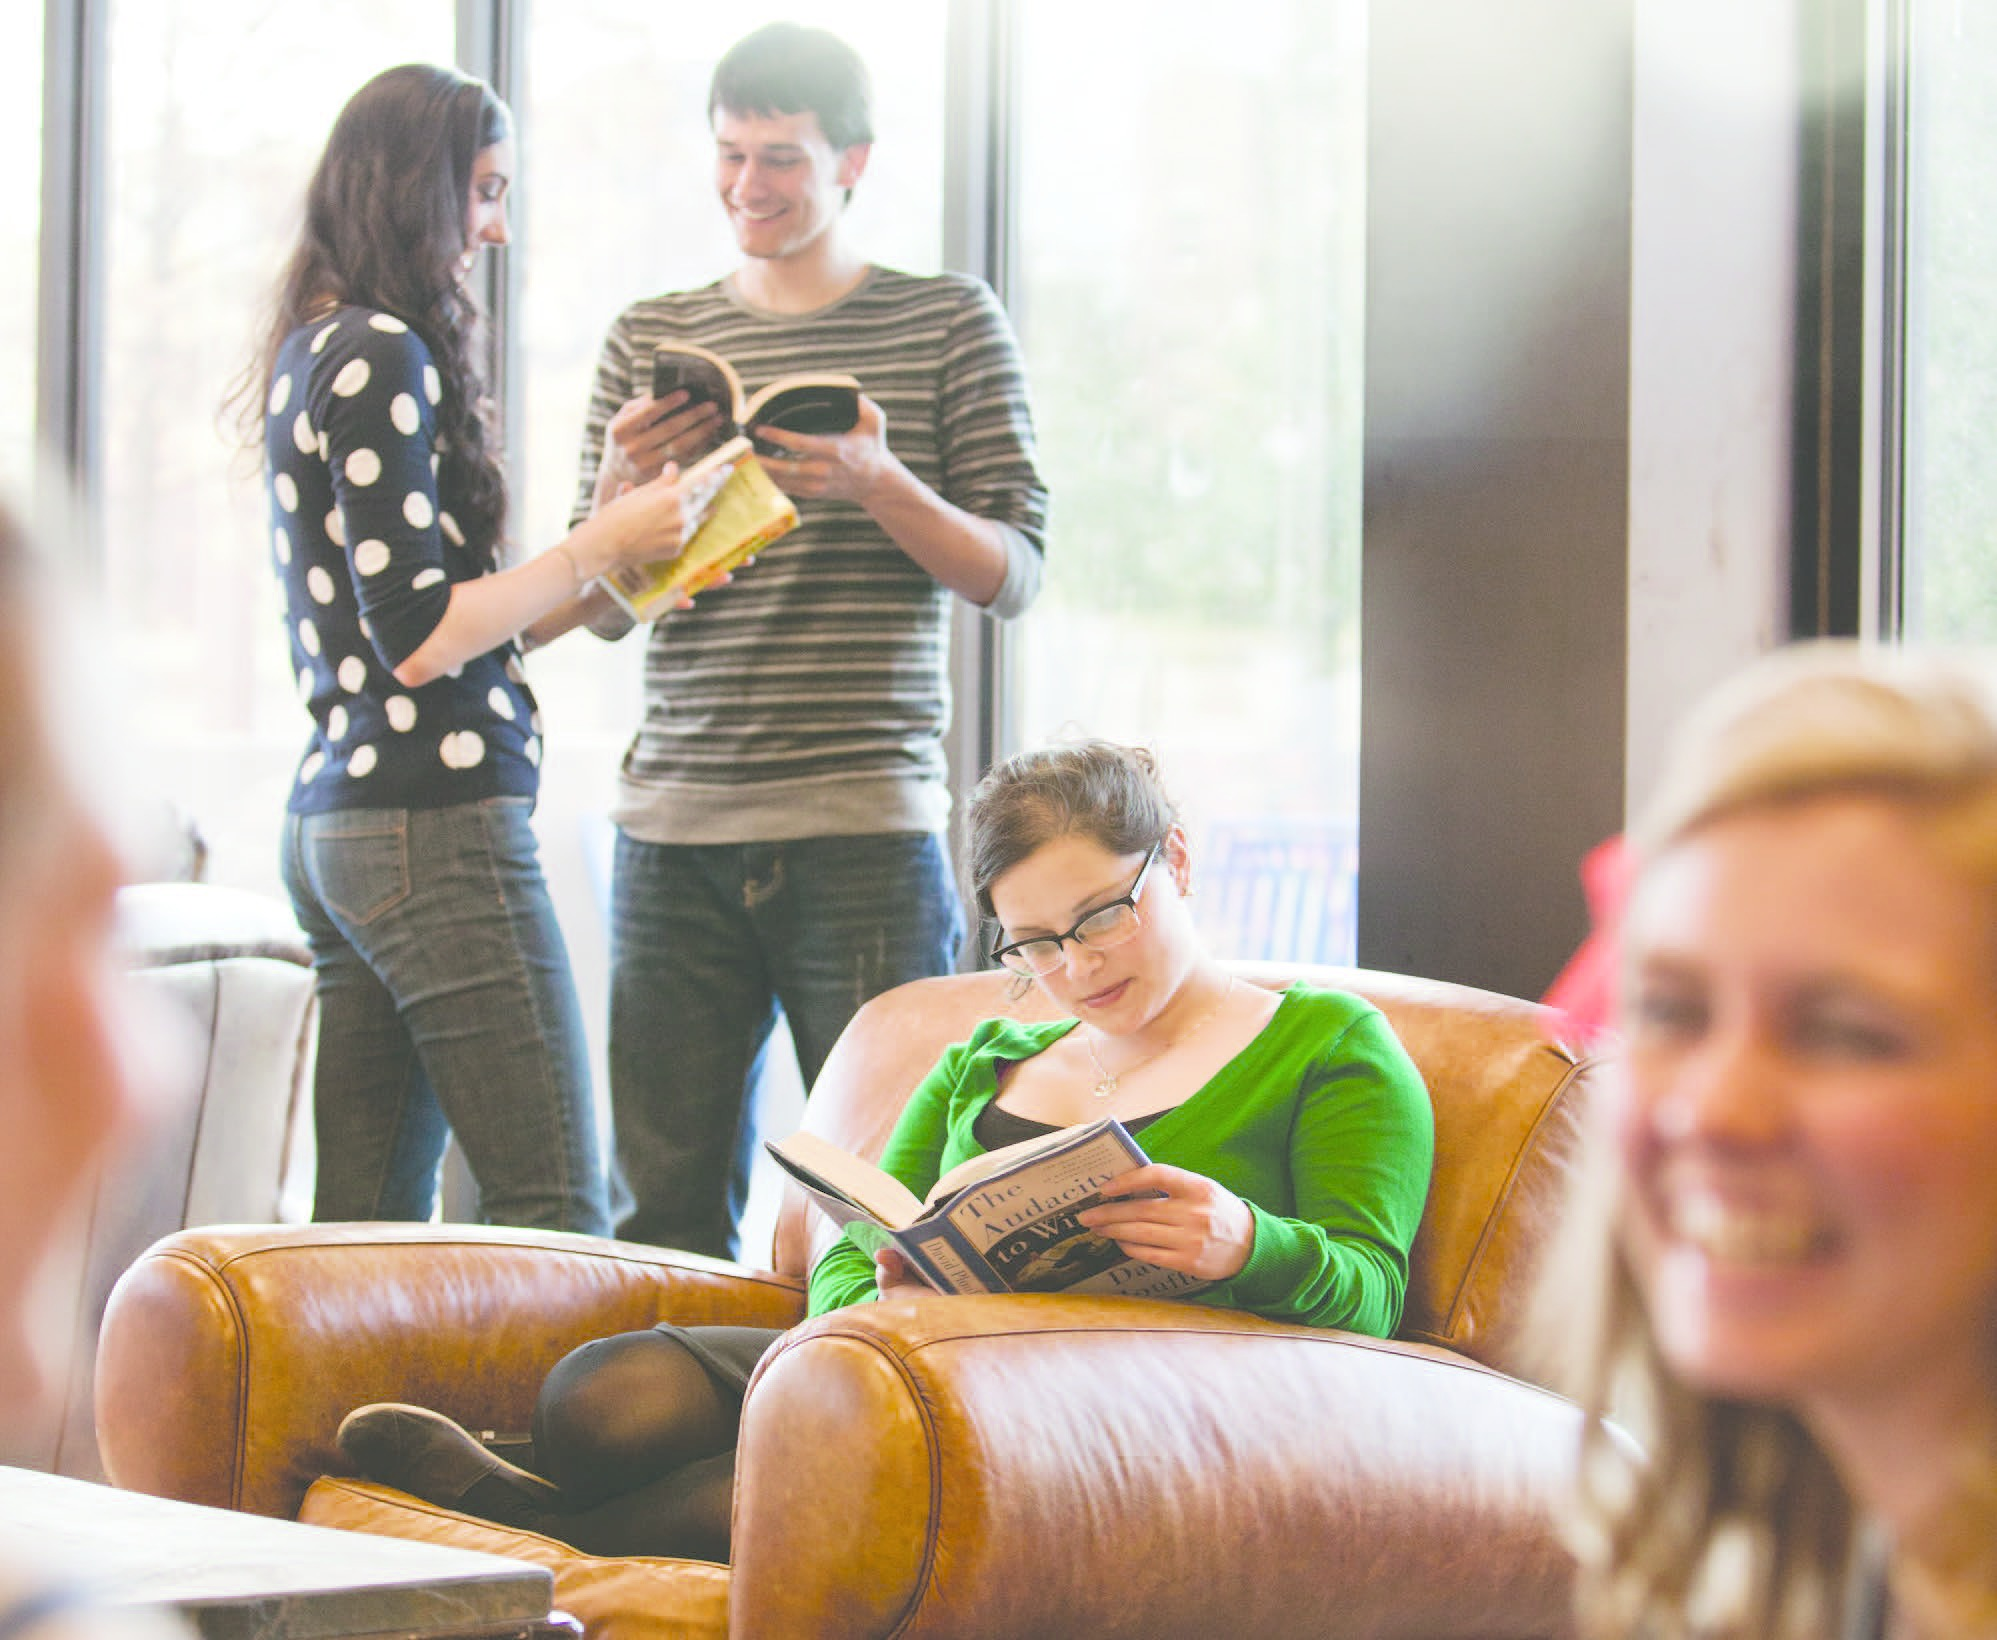 students read and talk in the library lounge